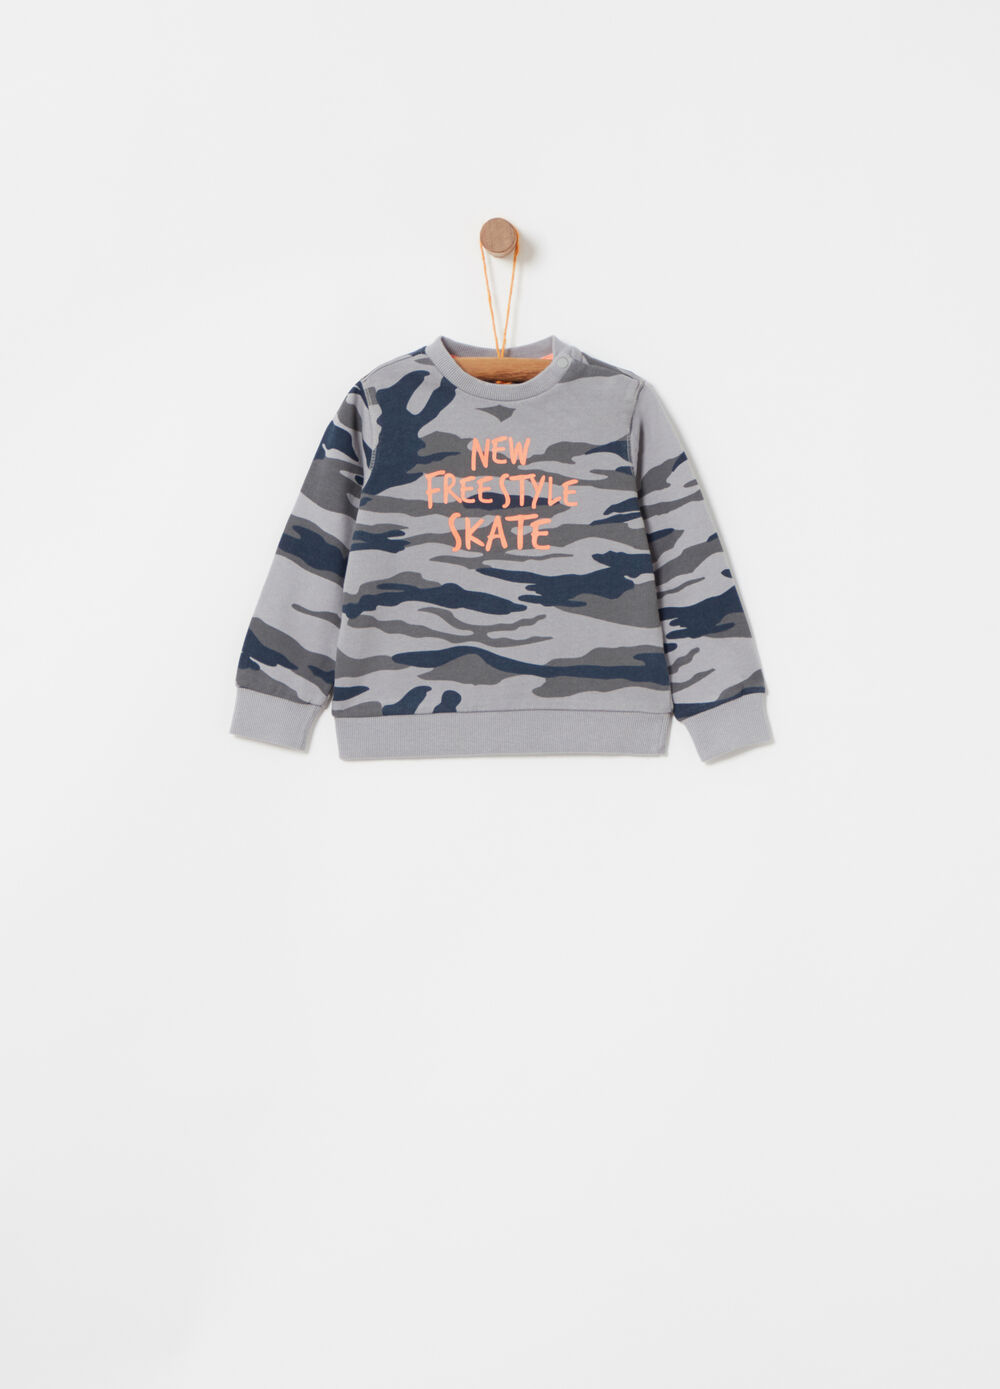 Sweatshirt with camouflage pattern and round neck